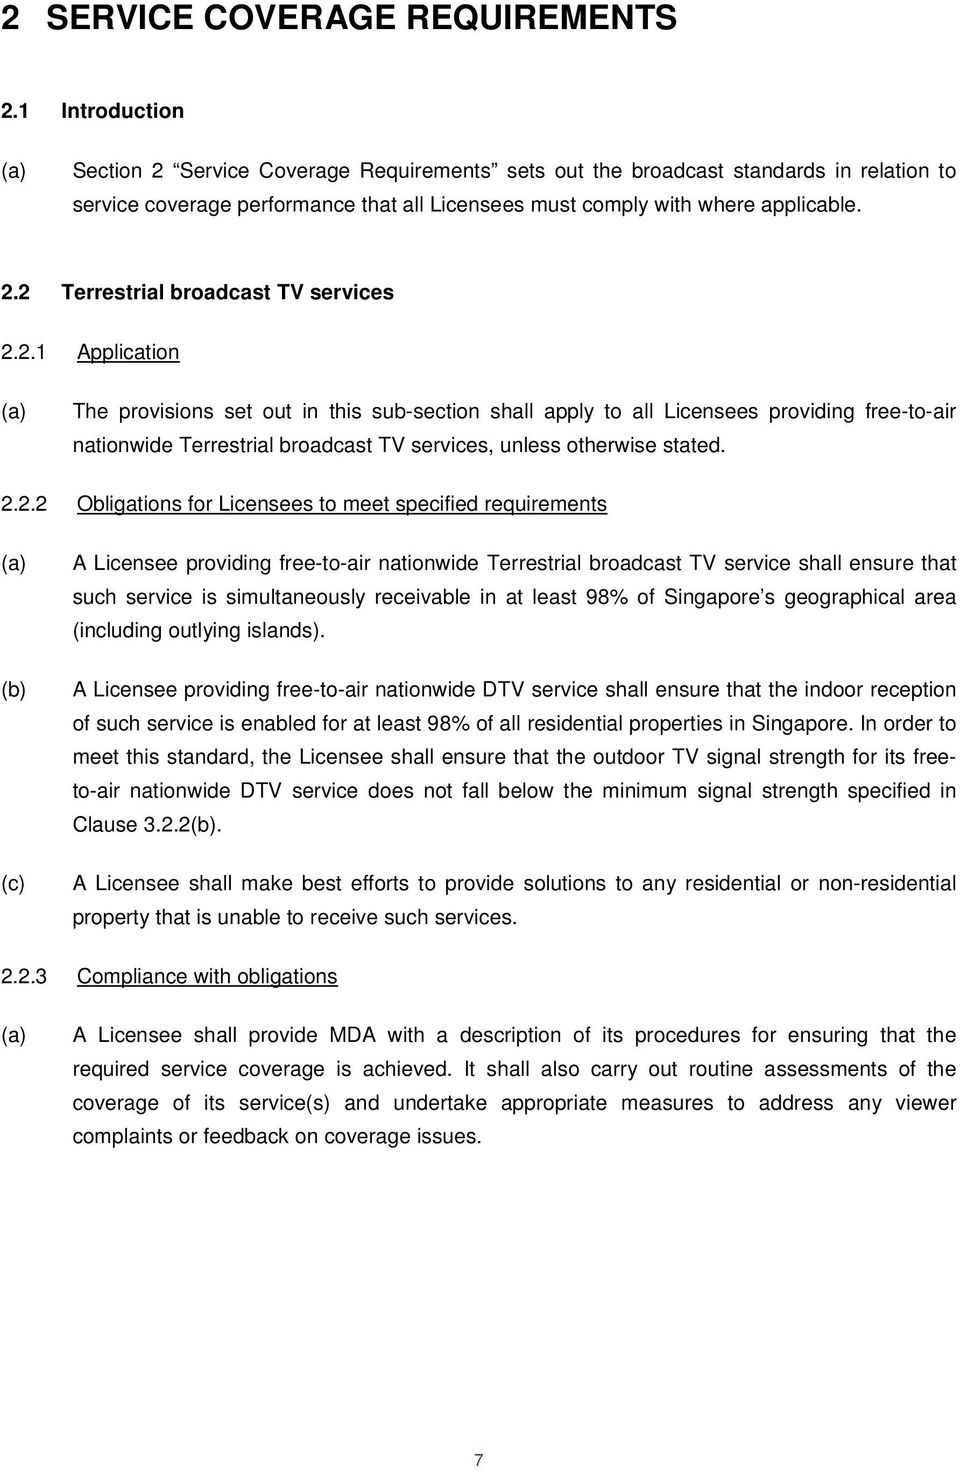 2.1 Application The provisions set out in this sub-section shall apply to all Licensees providing free-to-air nationwide Terrestrial broadcast TV services, unless otherwise stated. 2.2.2 Obligations